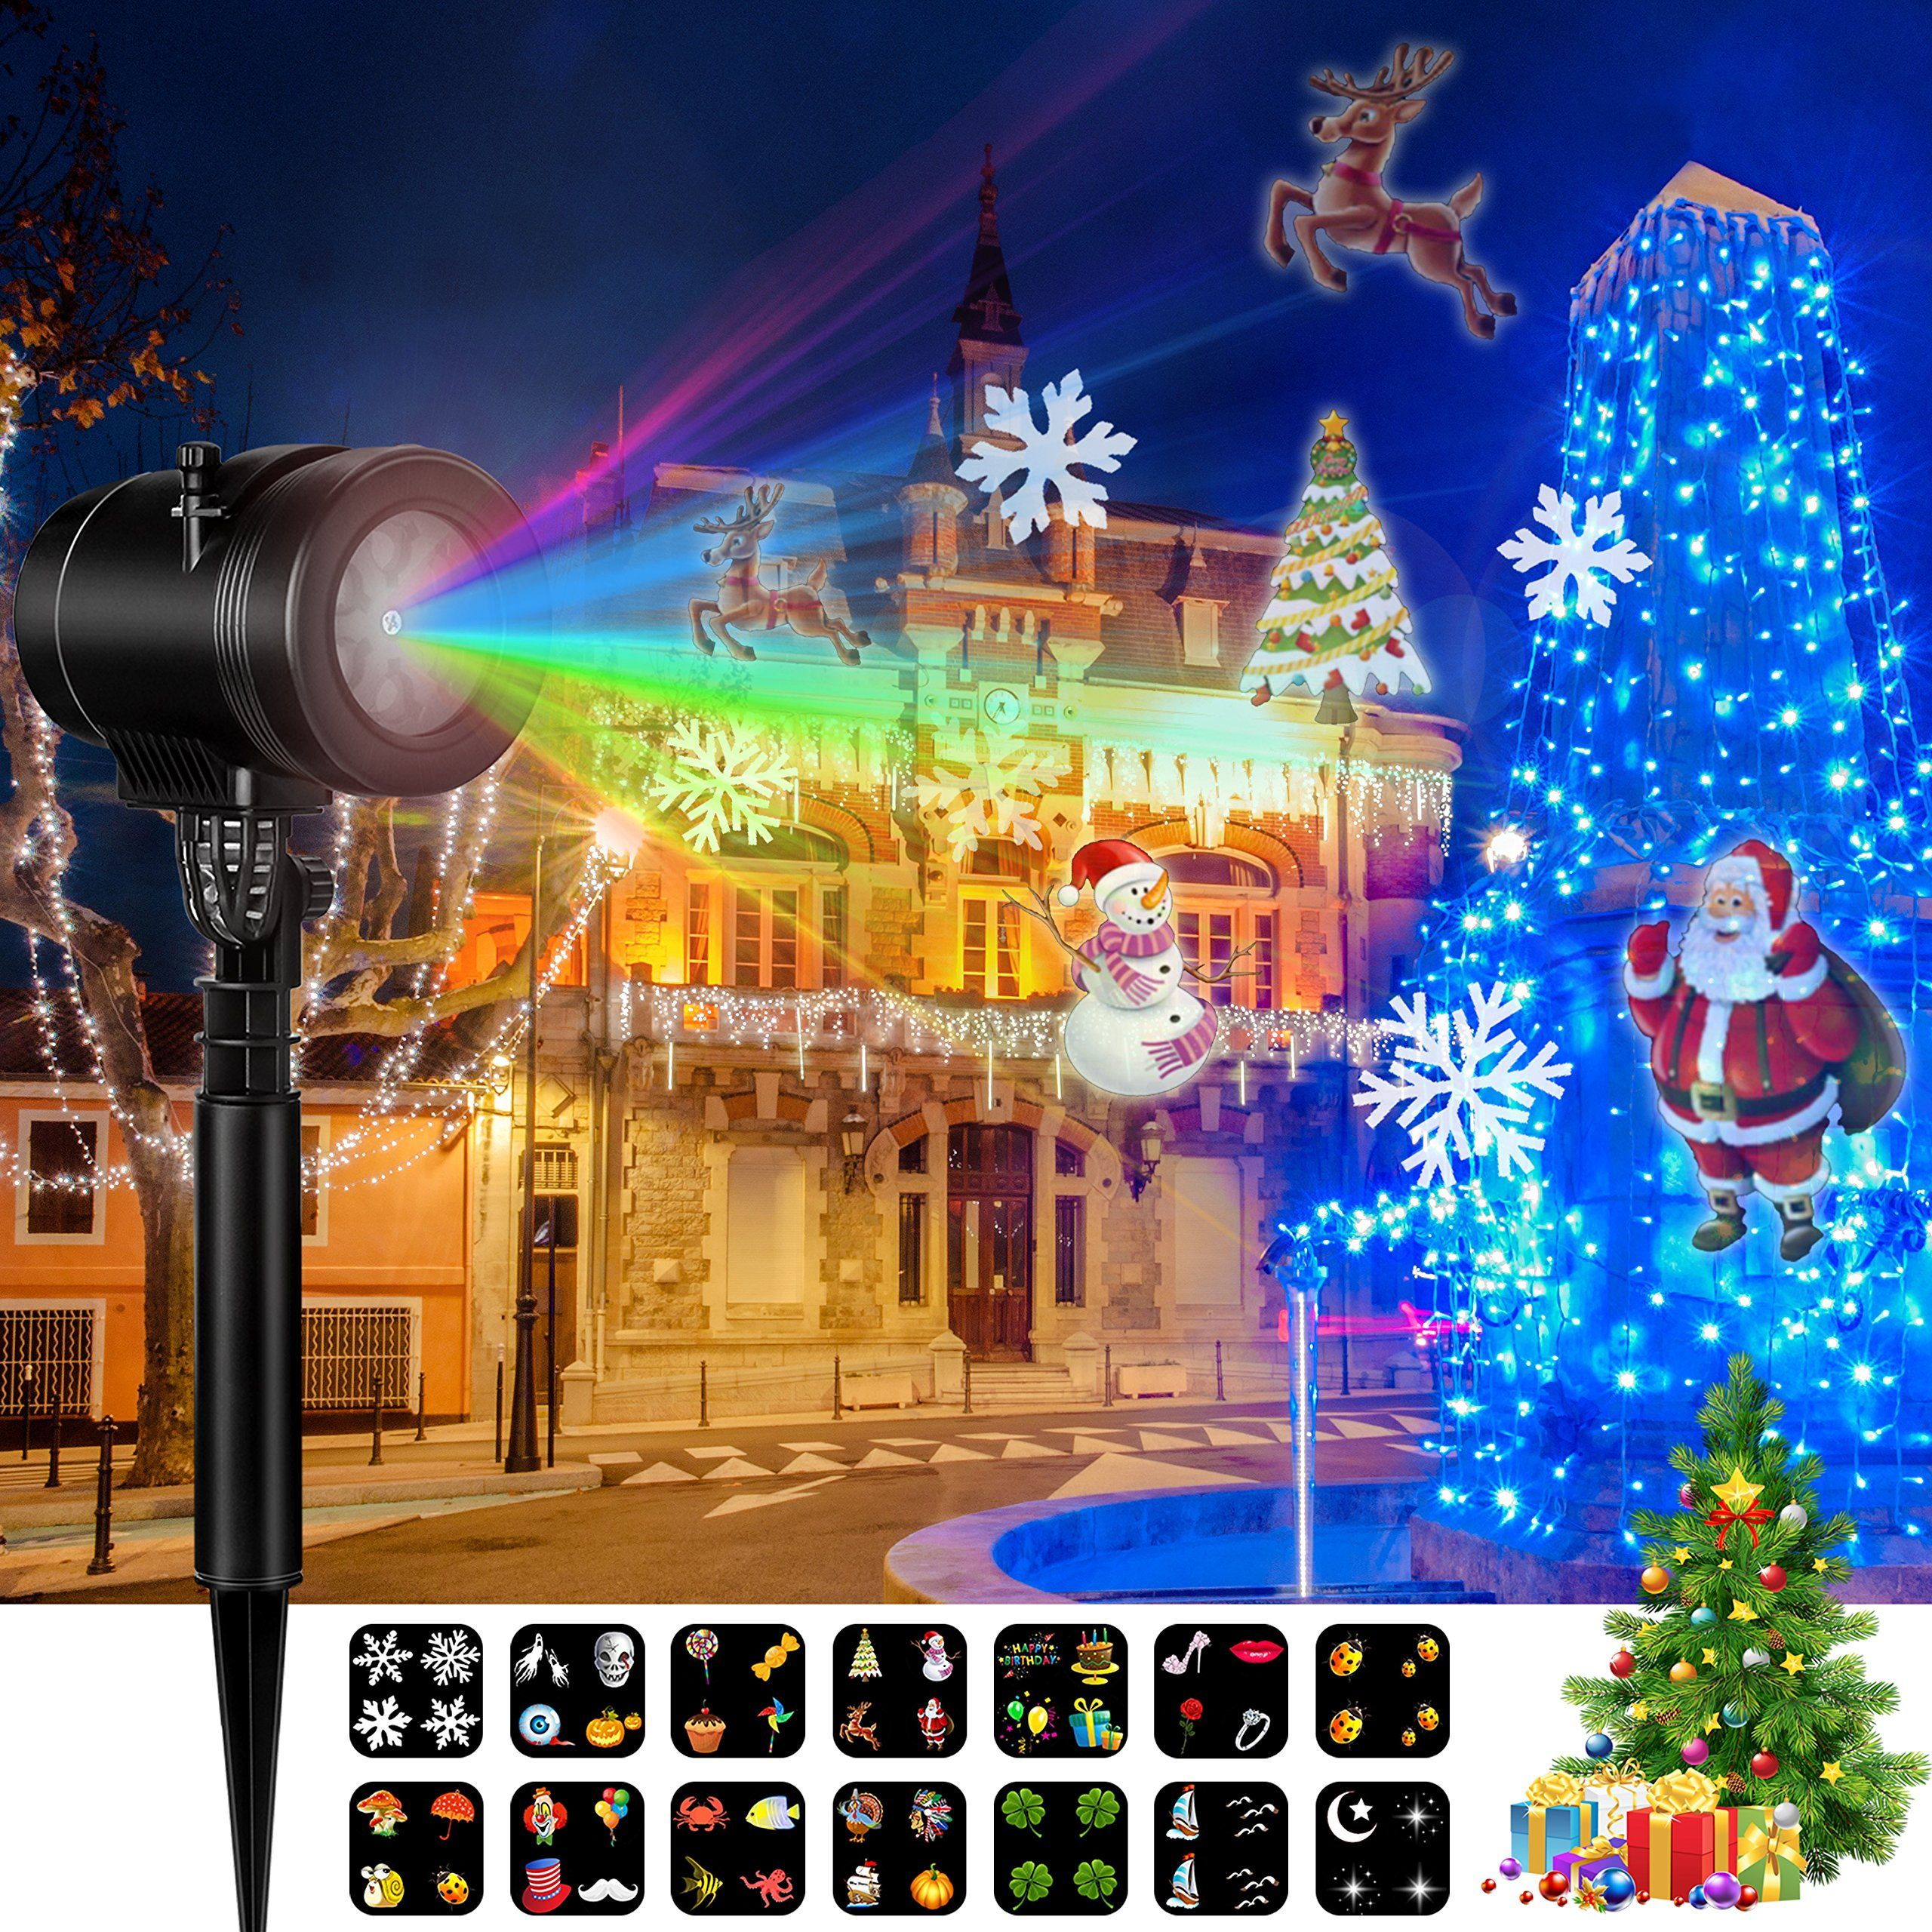 christmas led projector lights goutoday newest version 14 slides bright waterproof landscape led projector spotlight - Christmas Led Projector